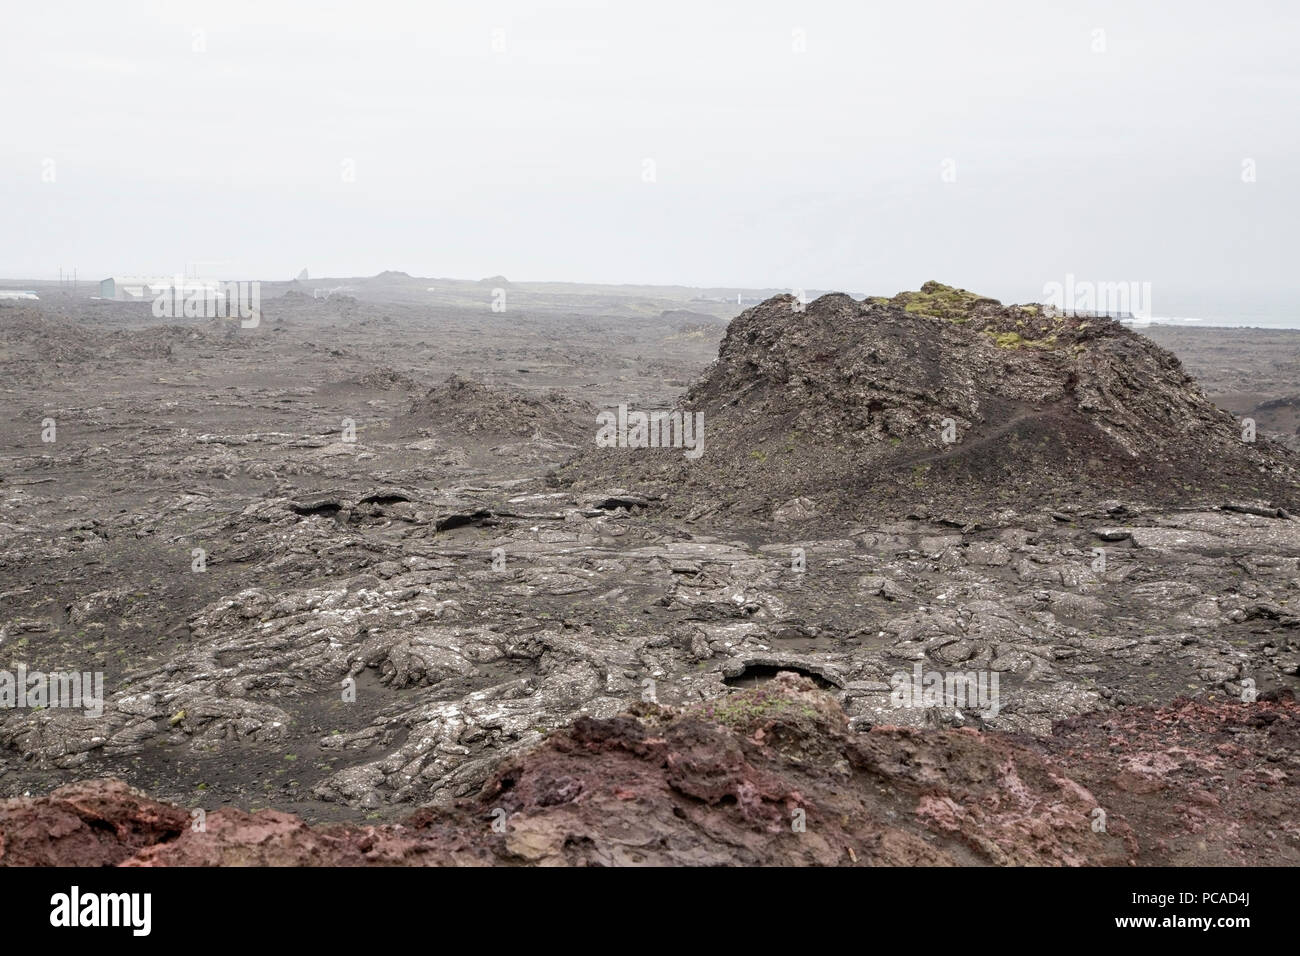 view of barren volcanic landscape in Iceland - Stock Image